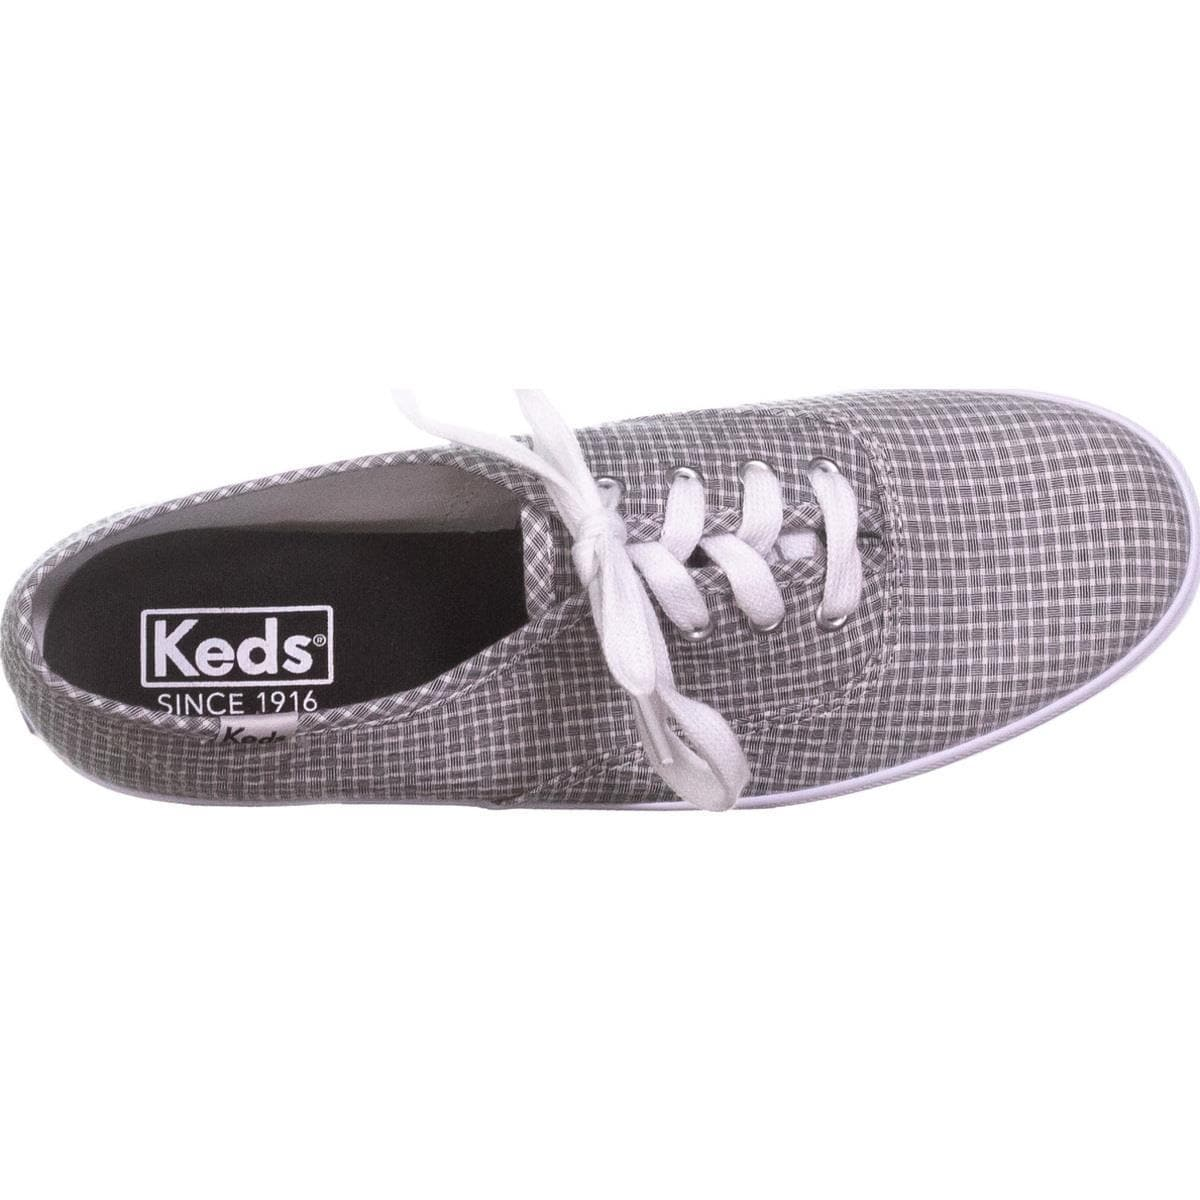 138ba93bf1b6 Shop Keds Champion Seersucker Lace Up Fashion Sneakers